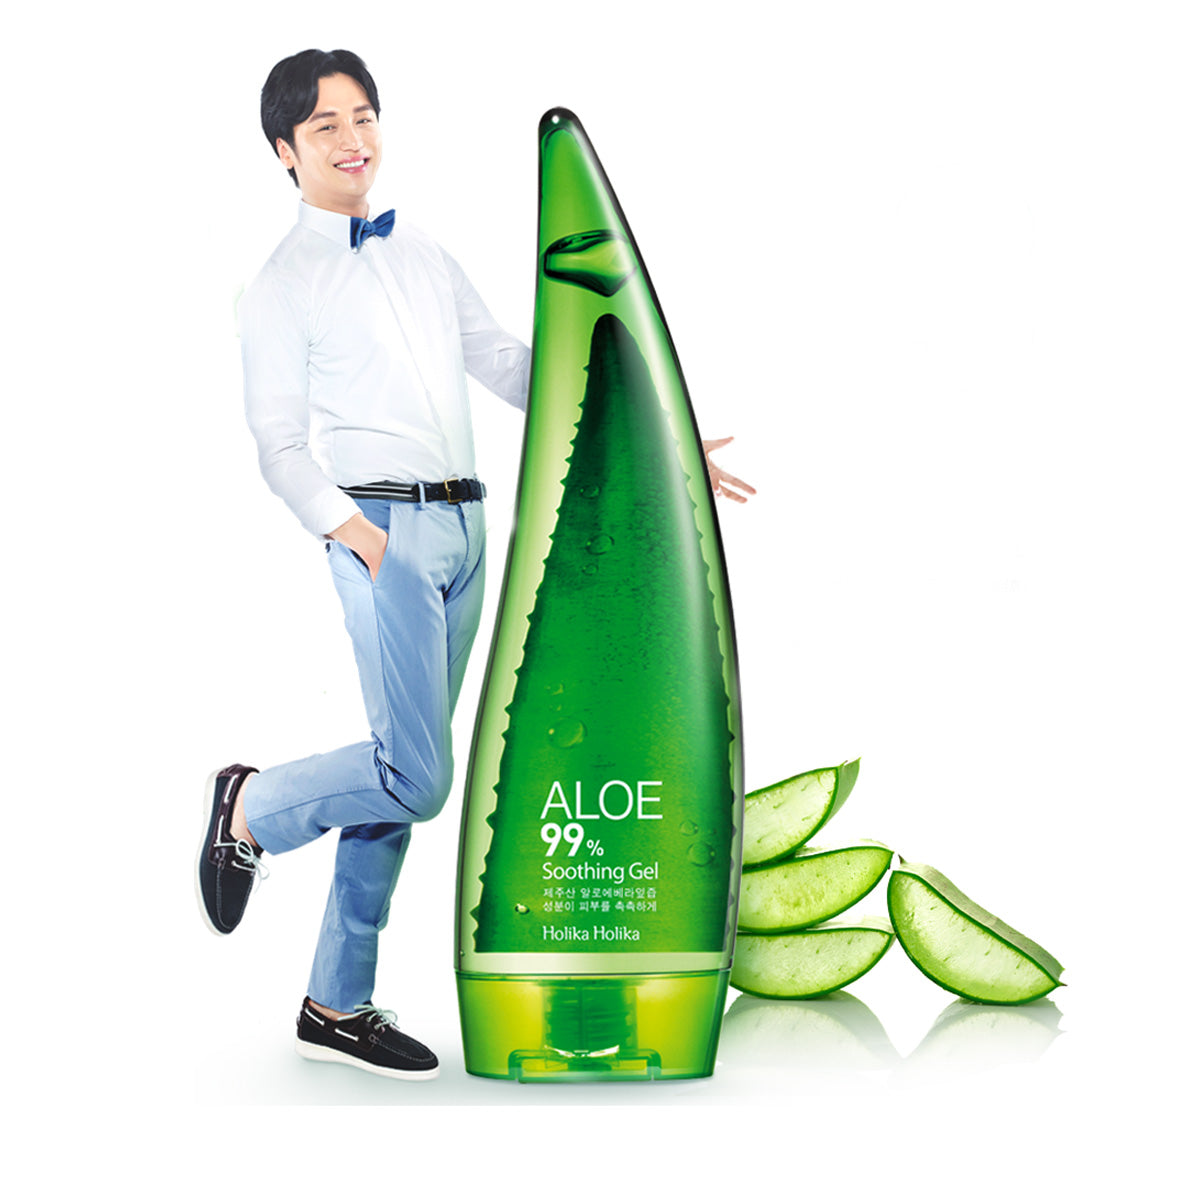 Aloe Vera Soothing Gel⭐Holika Holika 99% 250ml⭐Welcos Kwailnara 98% 500ml⭐韓國原裝進口水果之鄉蘆薈膠 freeshipping - Bluemoon Secrets Chamber